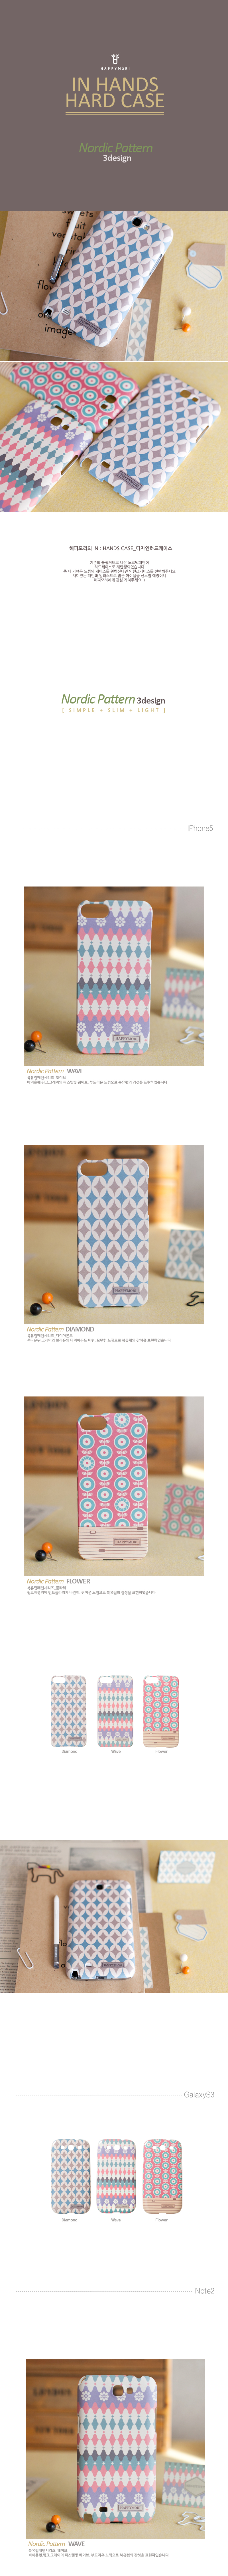 [HAPPYMORI] Hard Case_Doily NordicPattern 3Design (iPhone6Plus,Galaxy Note2,Galaxy Note3,Galaxy Note4)